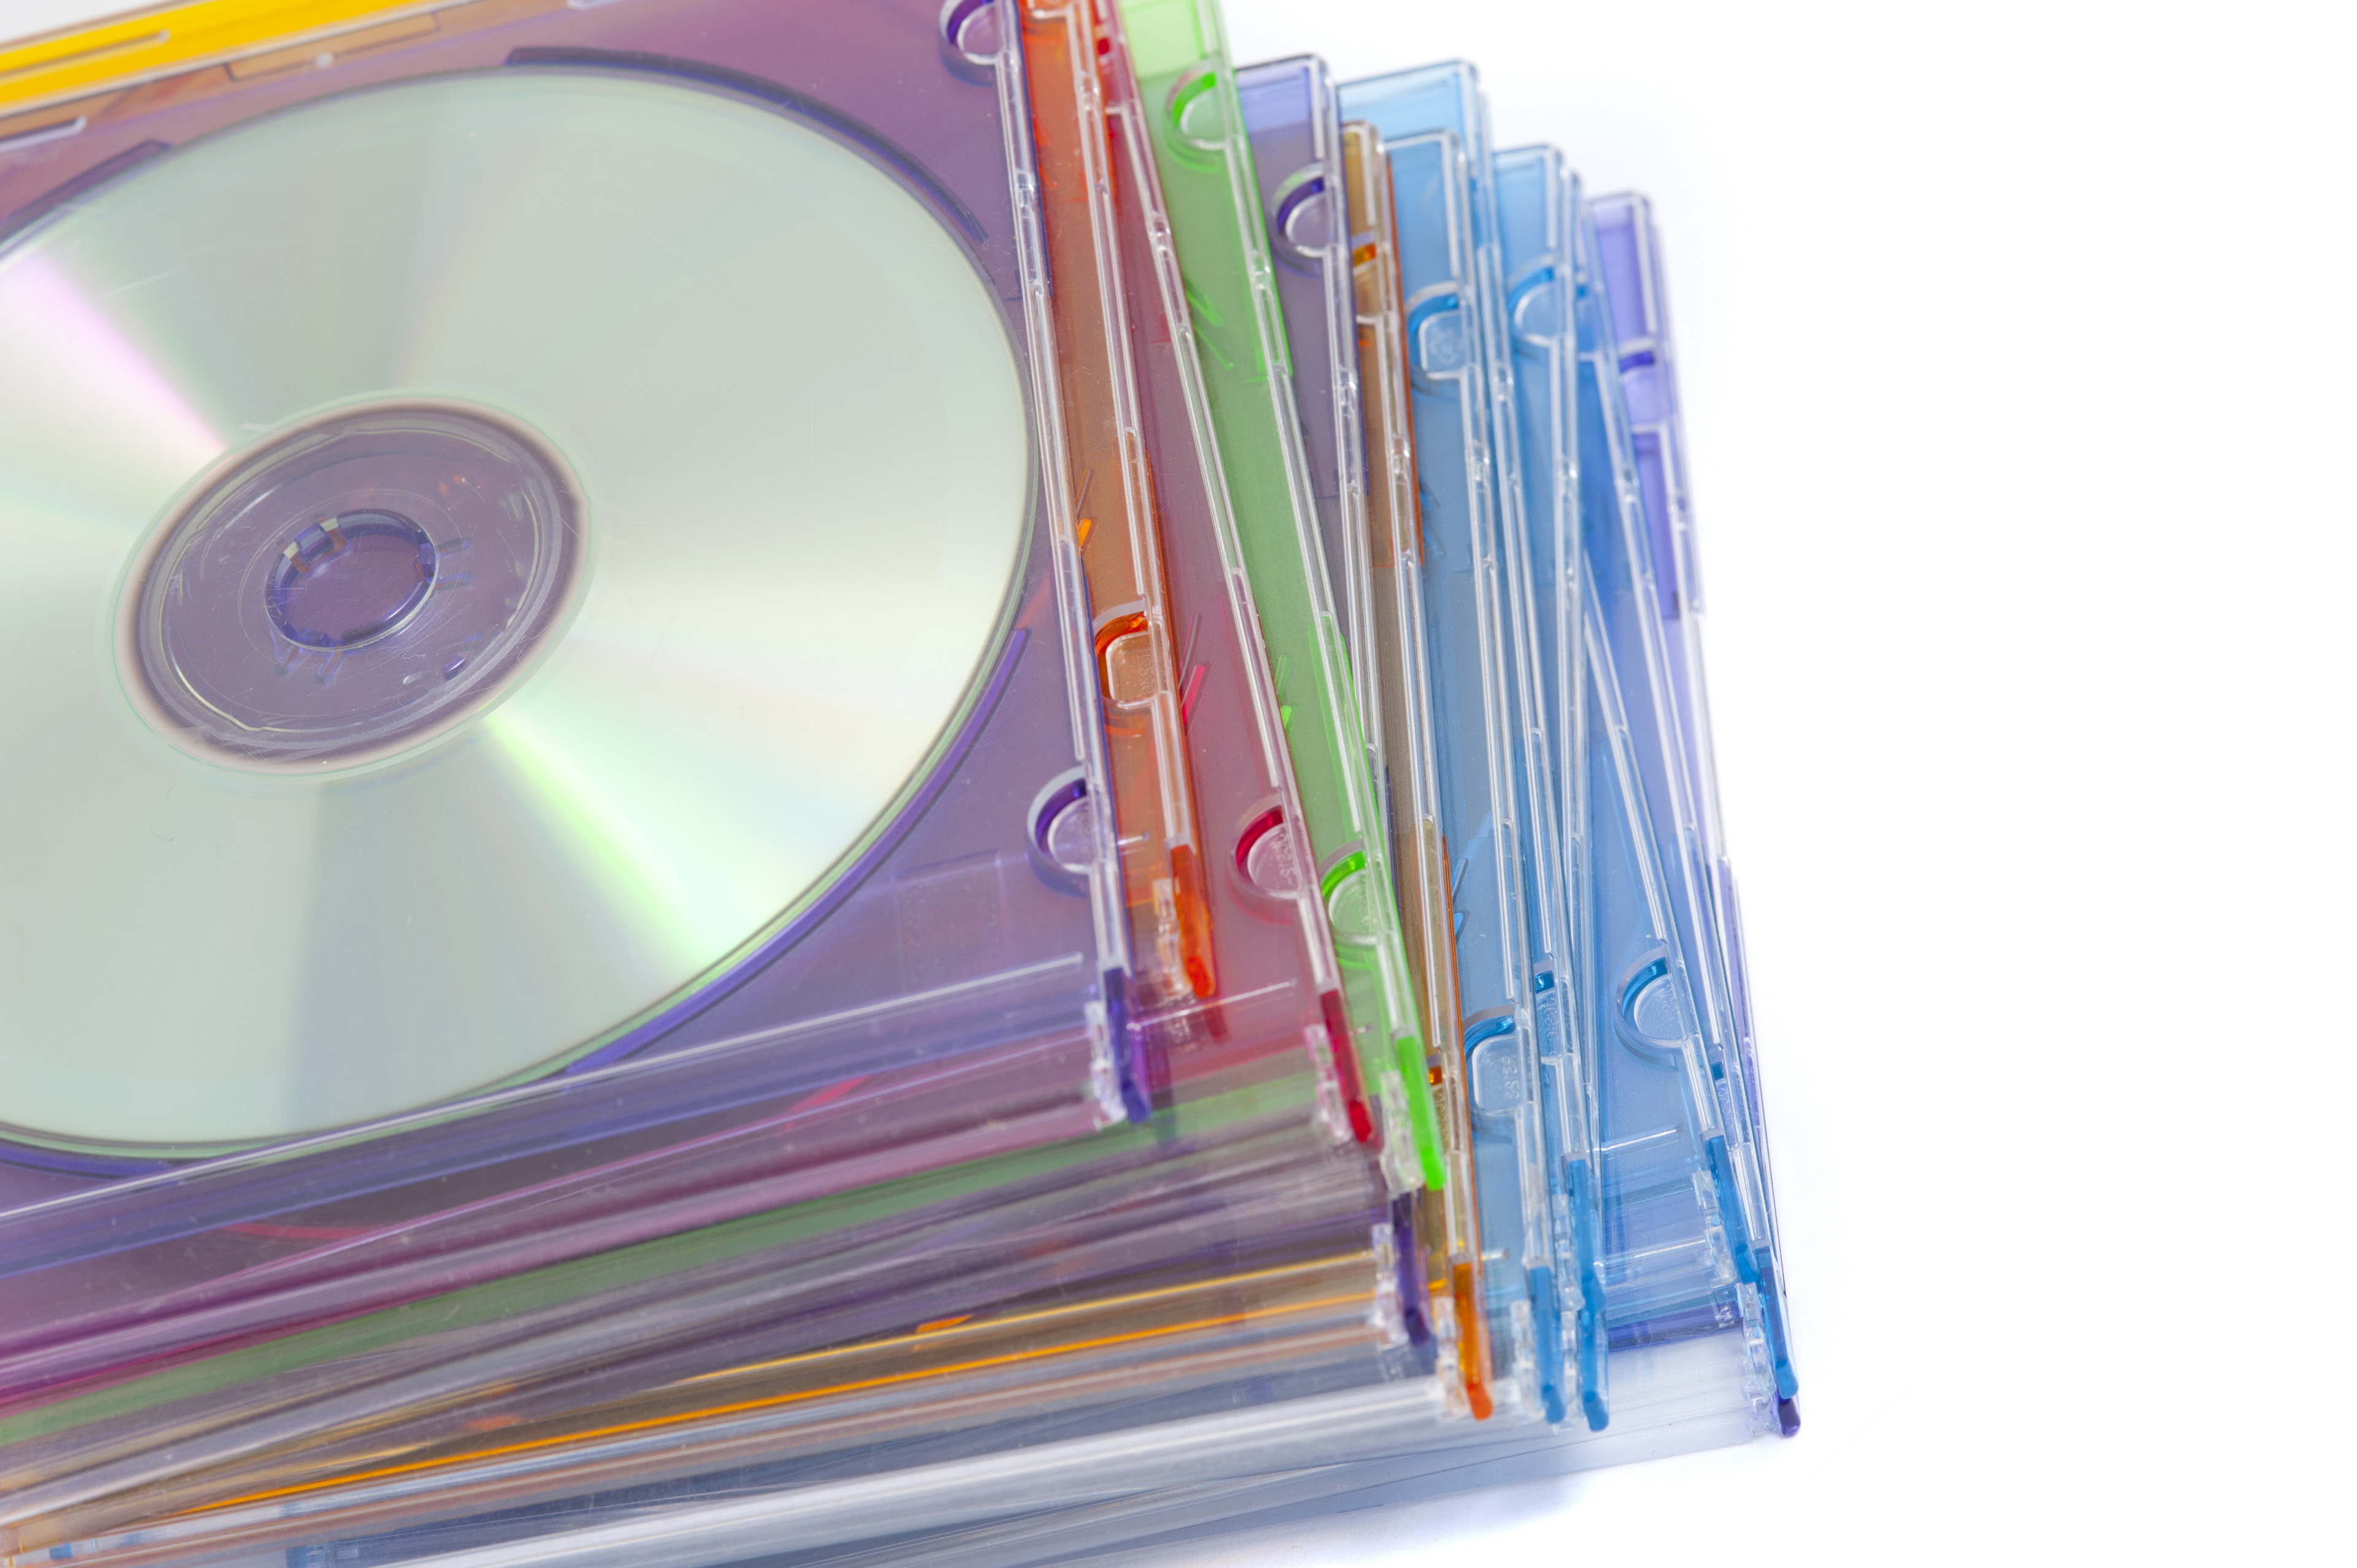 Close up Piled of Colored Compact Disc Cases on White Background.